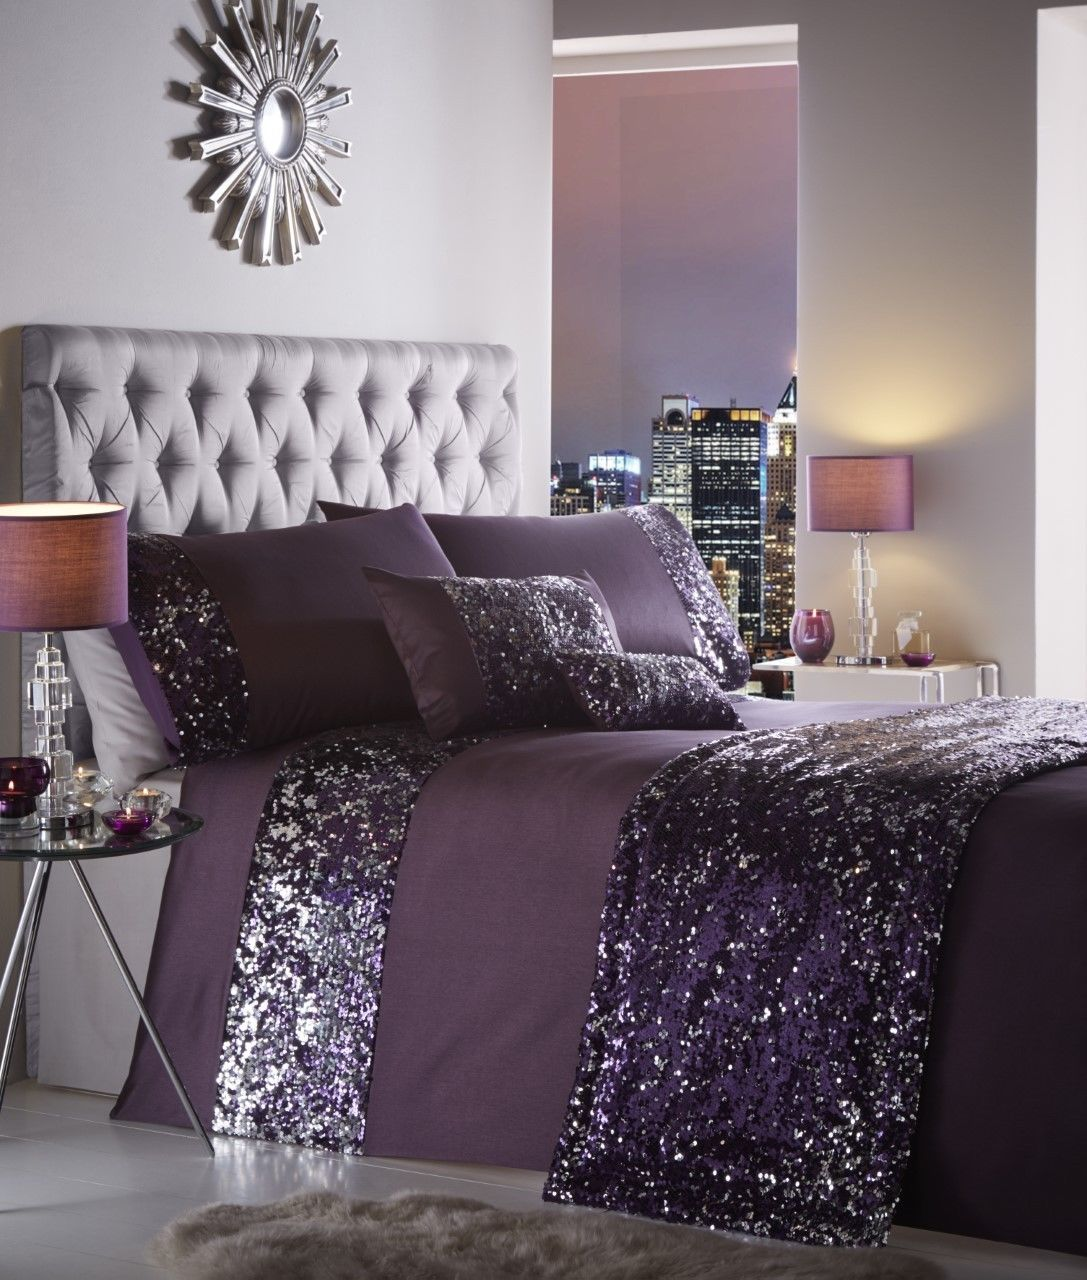 Details About Dazzle Luxury Sequin Sparkle Grey Purple Duvet Cover